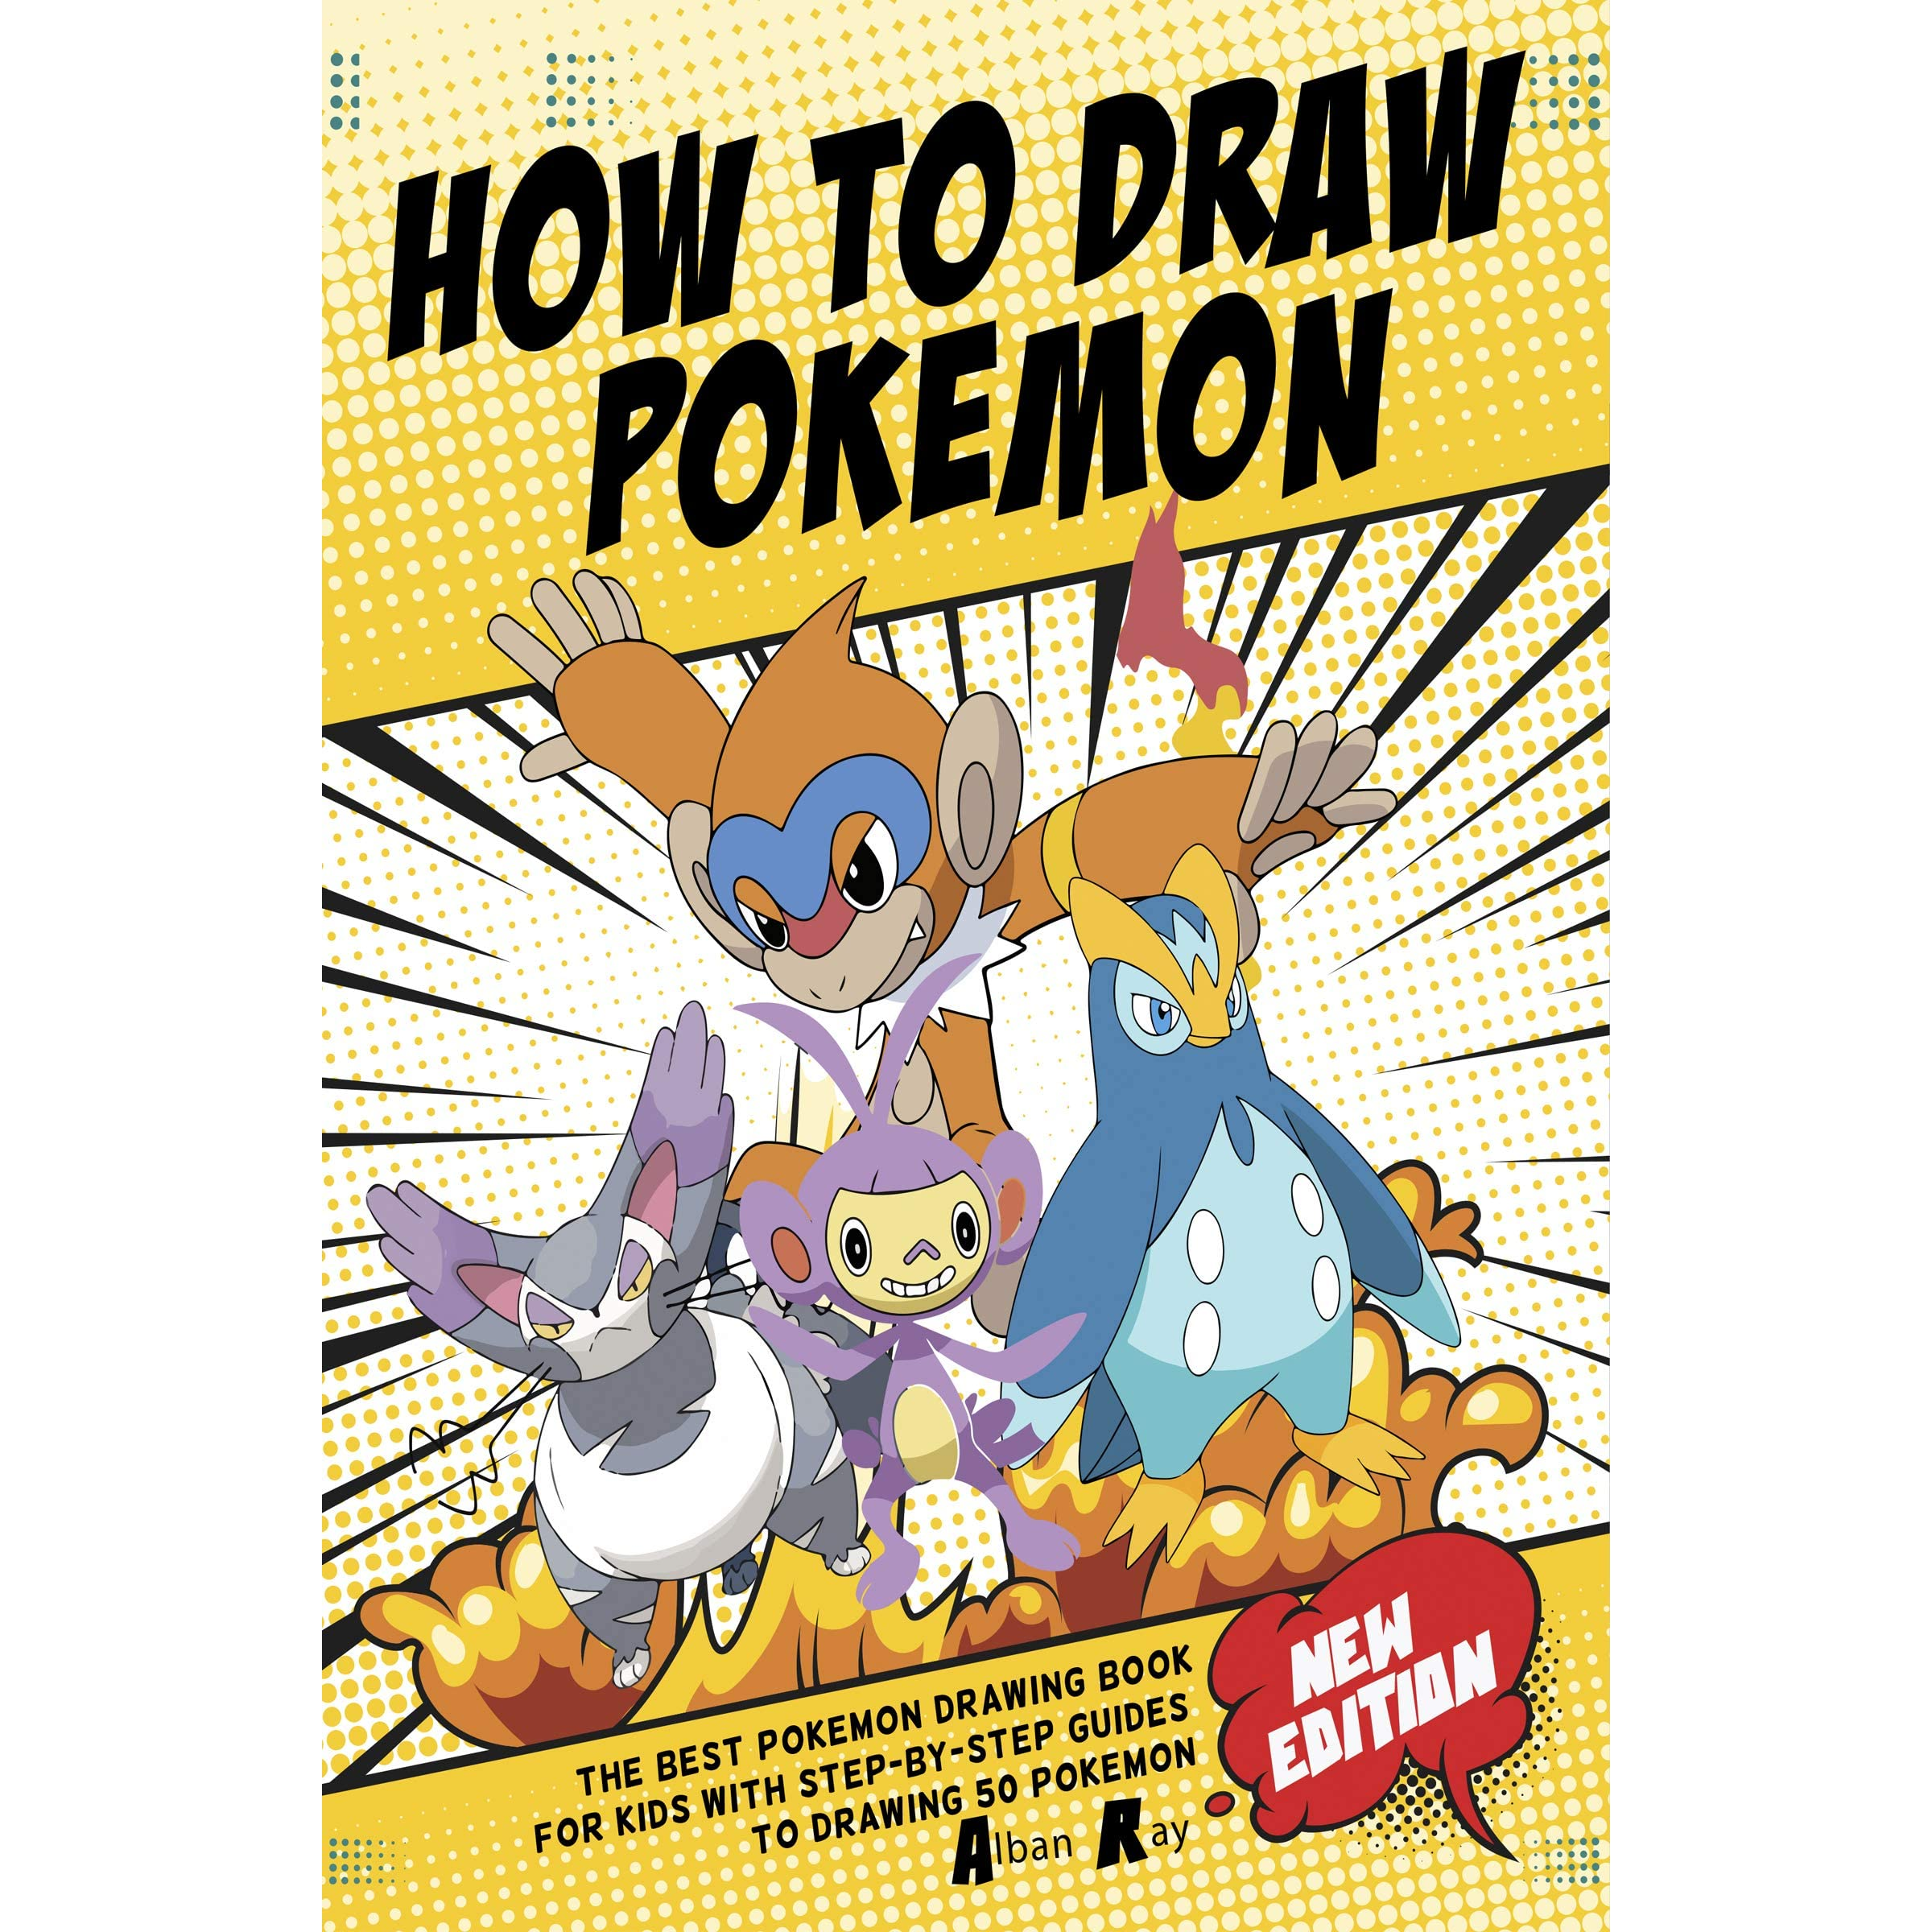 How To Draw Pokemon The Best Pokemon Drawing Book For Kids With Step By Step Guides To Drawing 50 Pokemon By Alban Ray